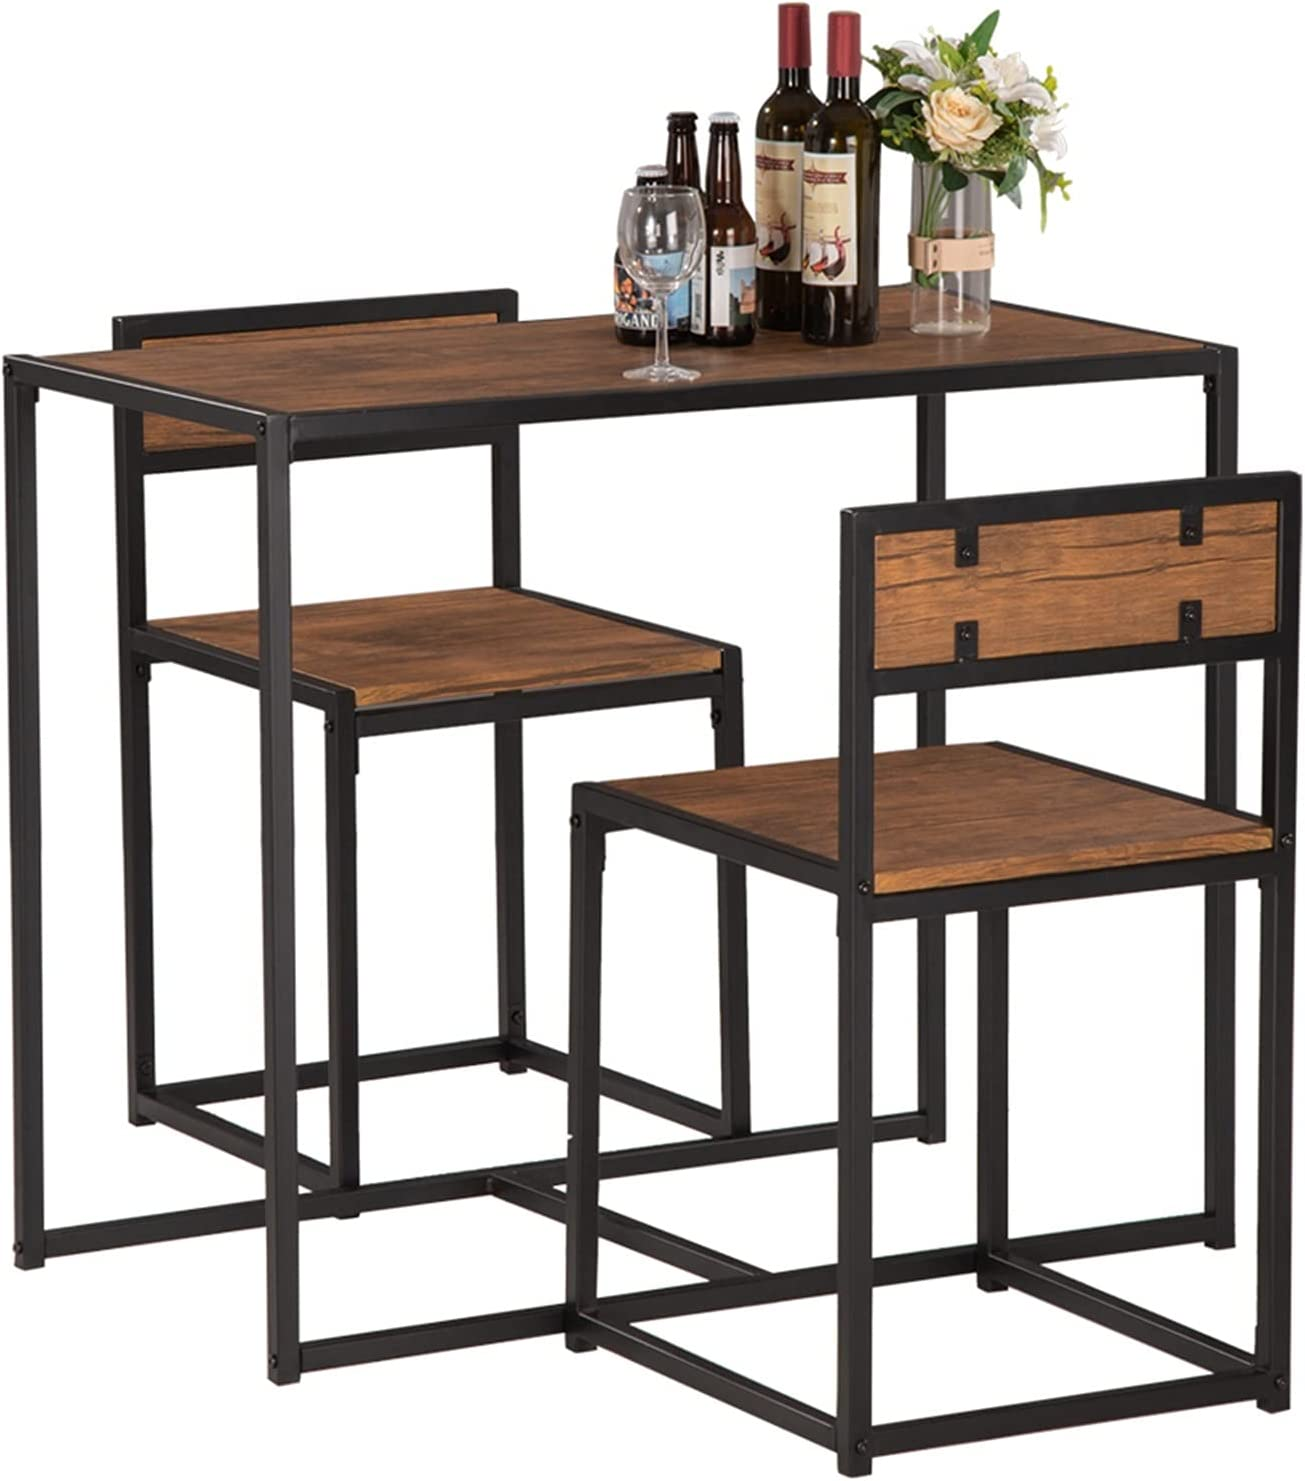 ZHM 3-Piece Table and Chair Set - Compact Inventory cleanup selling sale Dining Space Bar Small Chicago Mall